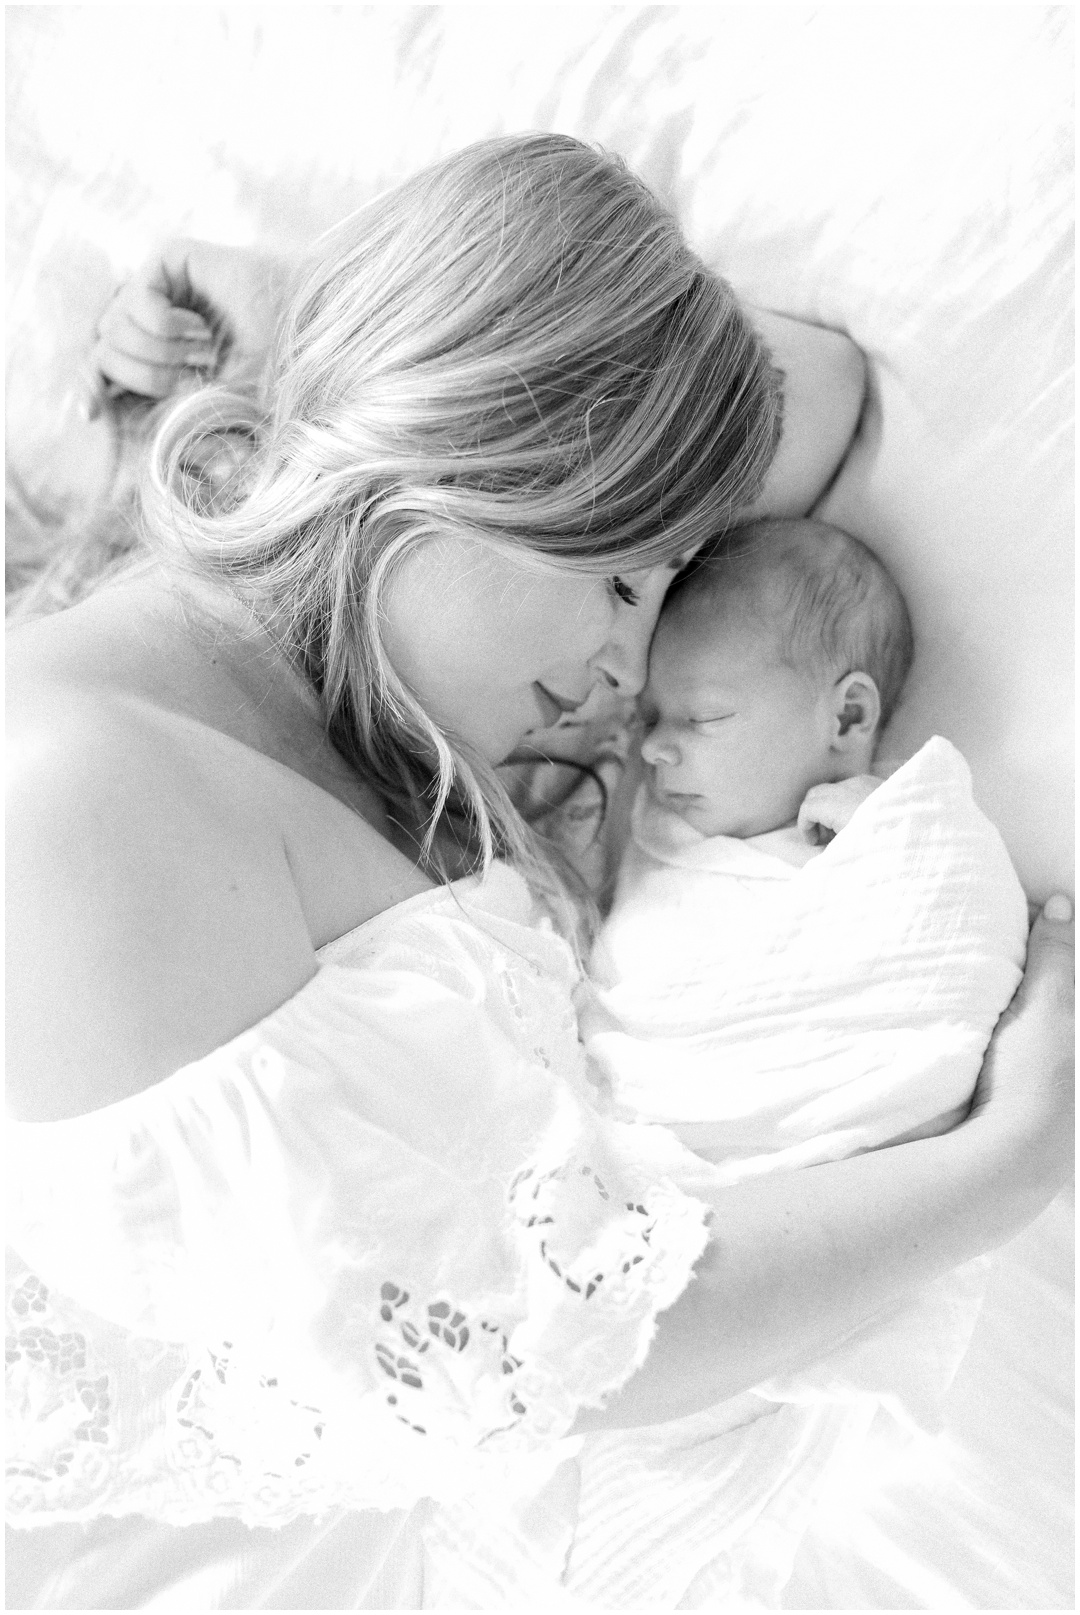 Newport_Beach_Newborn_Light_Airy_Natural_Photographer_Newport_Beach_Photographer_Orange_County_Family_Photographer_Cori_Kleckner_Photography_Huntington_Beach_Photographer_Family_OC_Newborn_Megan_Bradley_Schueneman_Charlie_Schueneman_Dean__3606.jpg